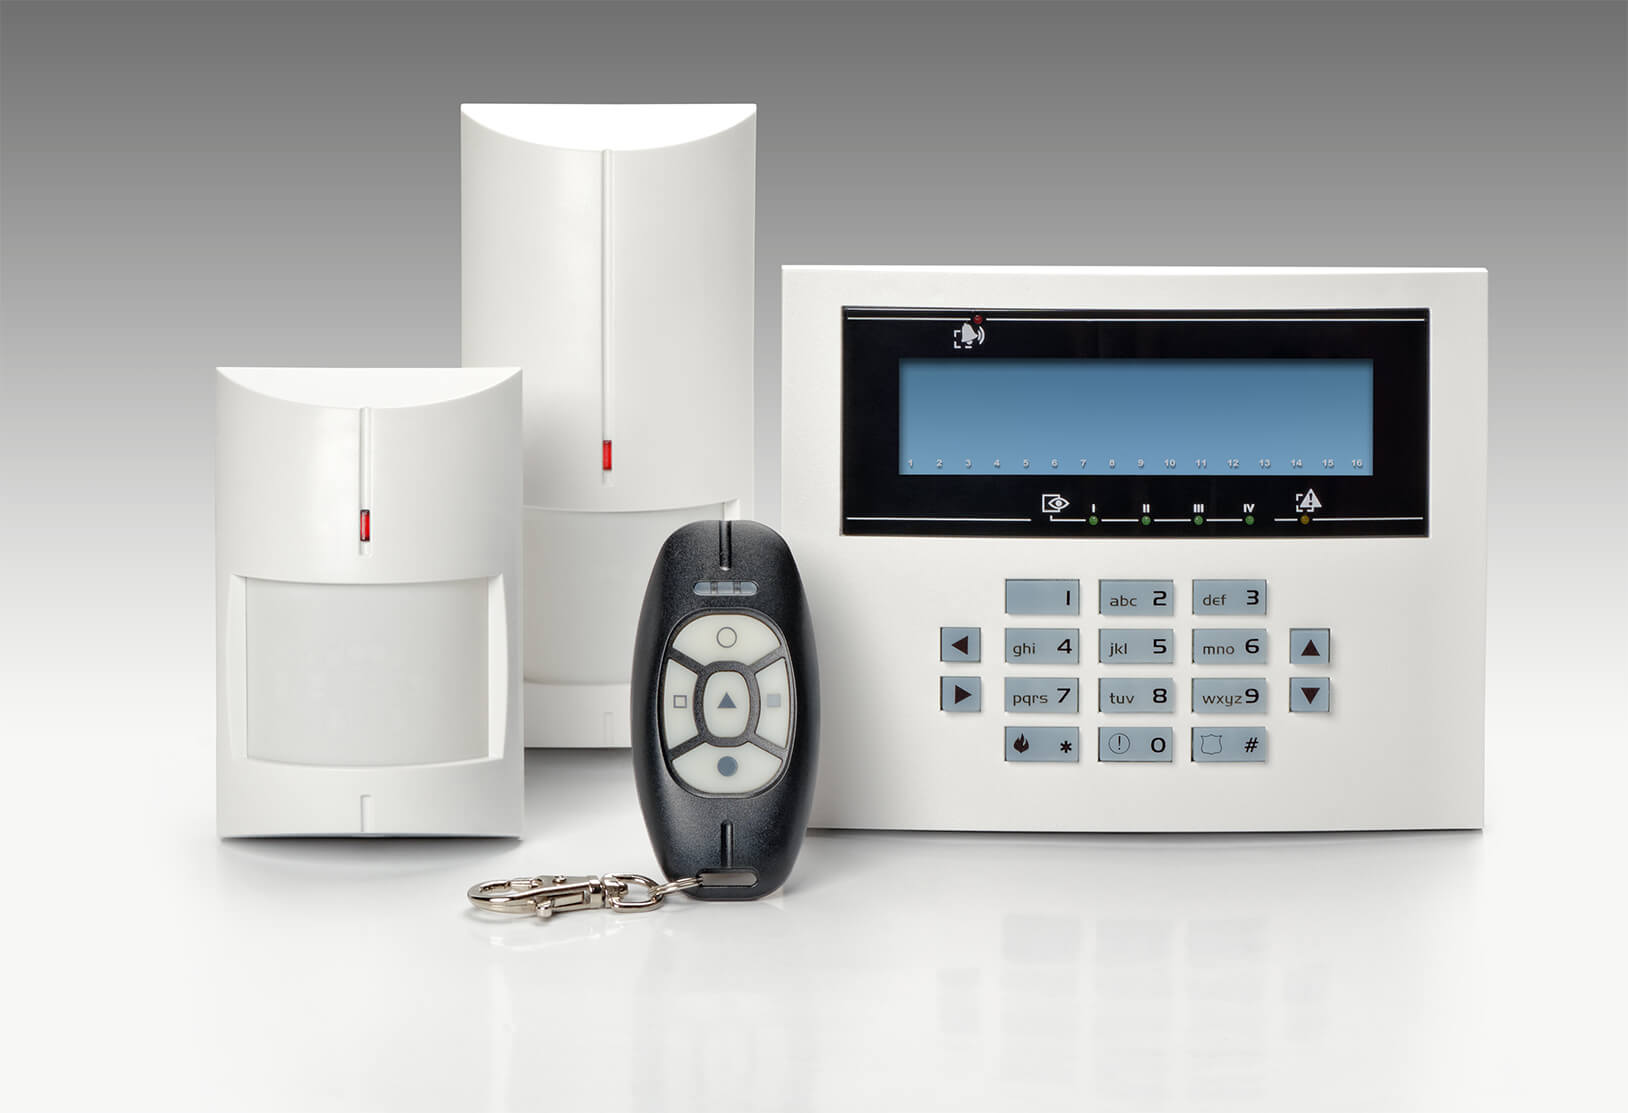 Business & Residential NACOSS Approved Burglar Alarms In Bow E3 - Local Bow E3 security company.Call 02078872244 - Dedicated to Safety & Security. Companies, shops and homes ..